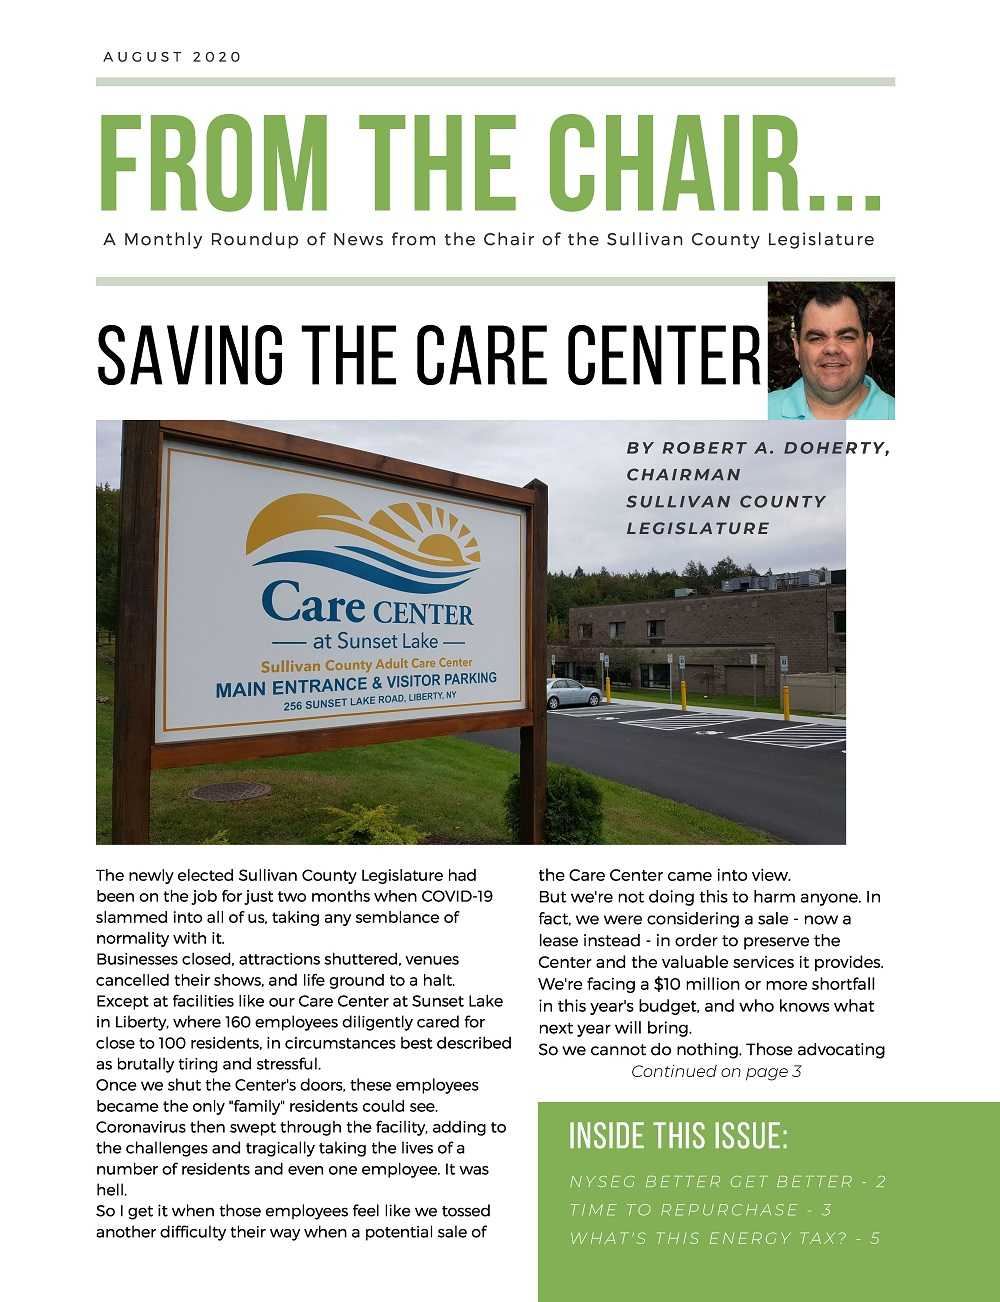 From the Chair Newsletter, August 2020